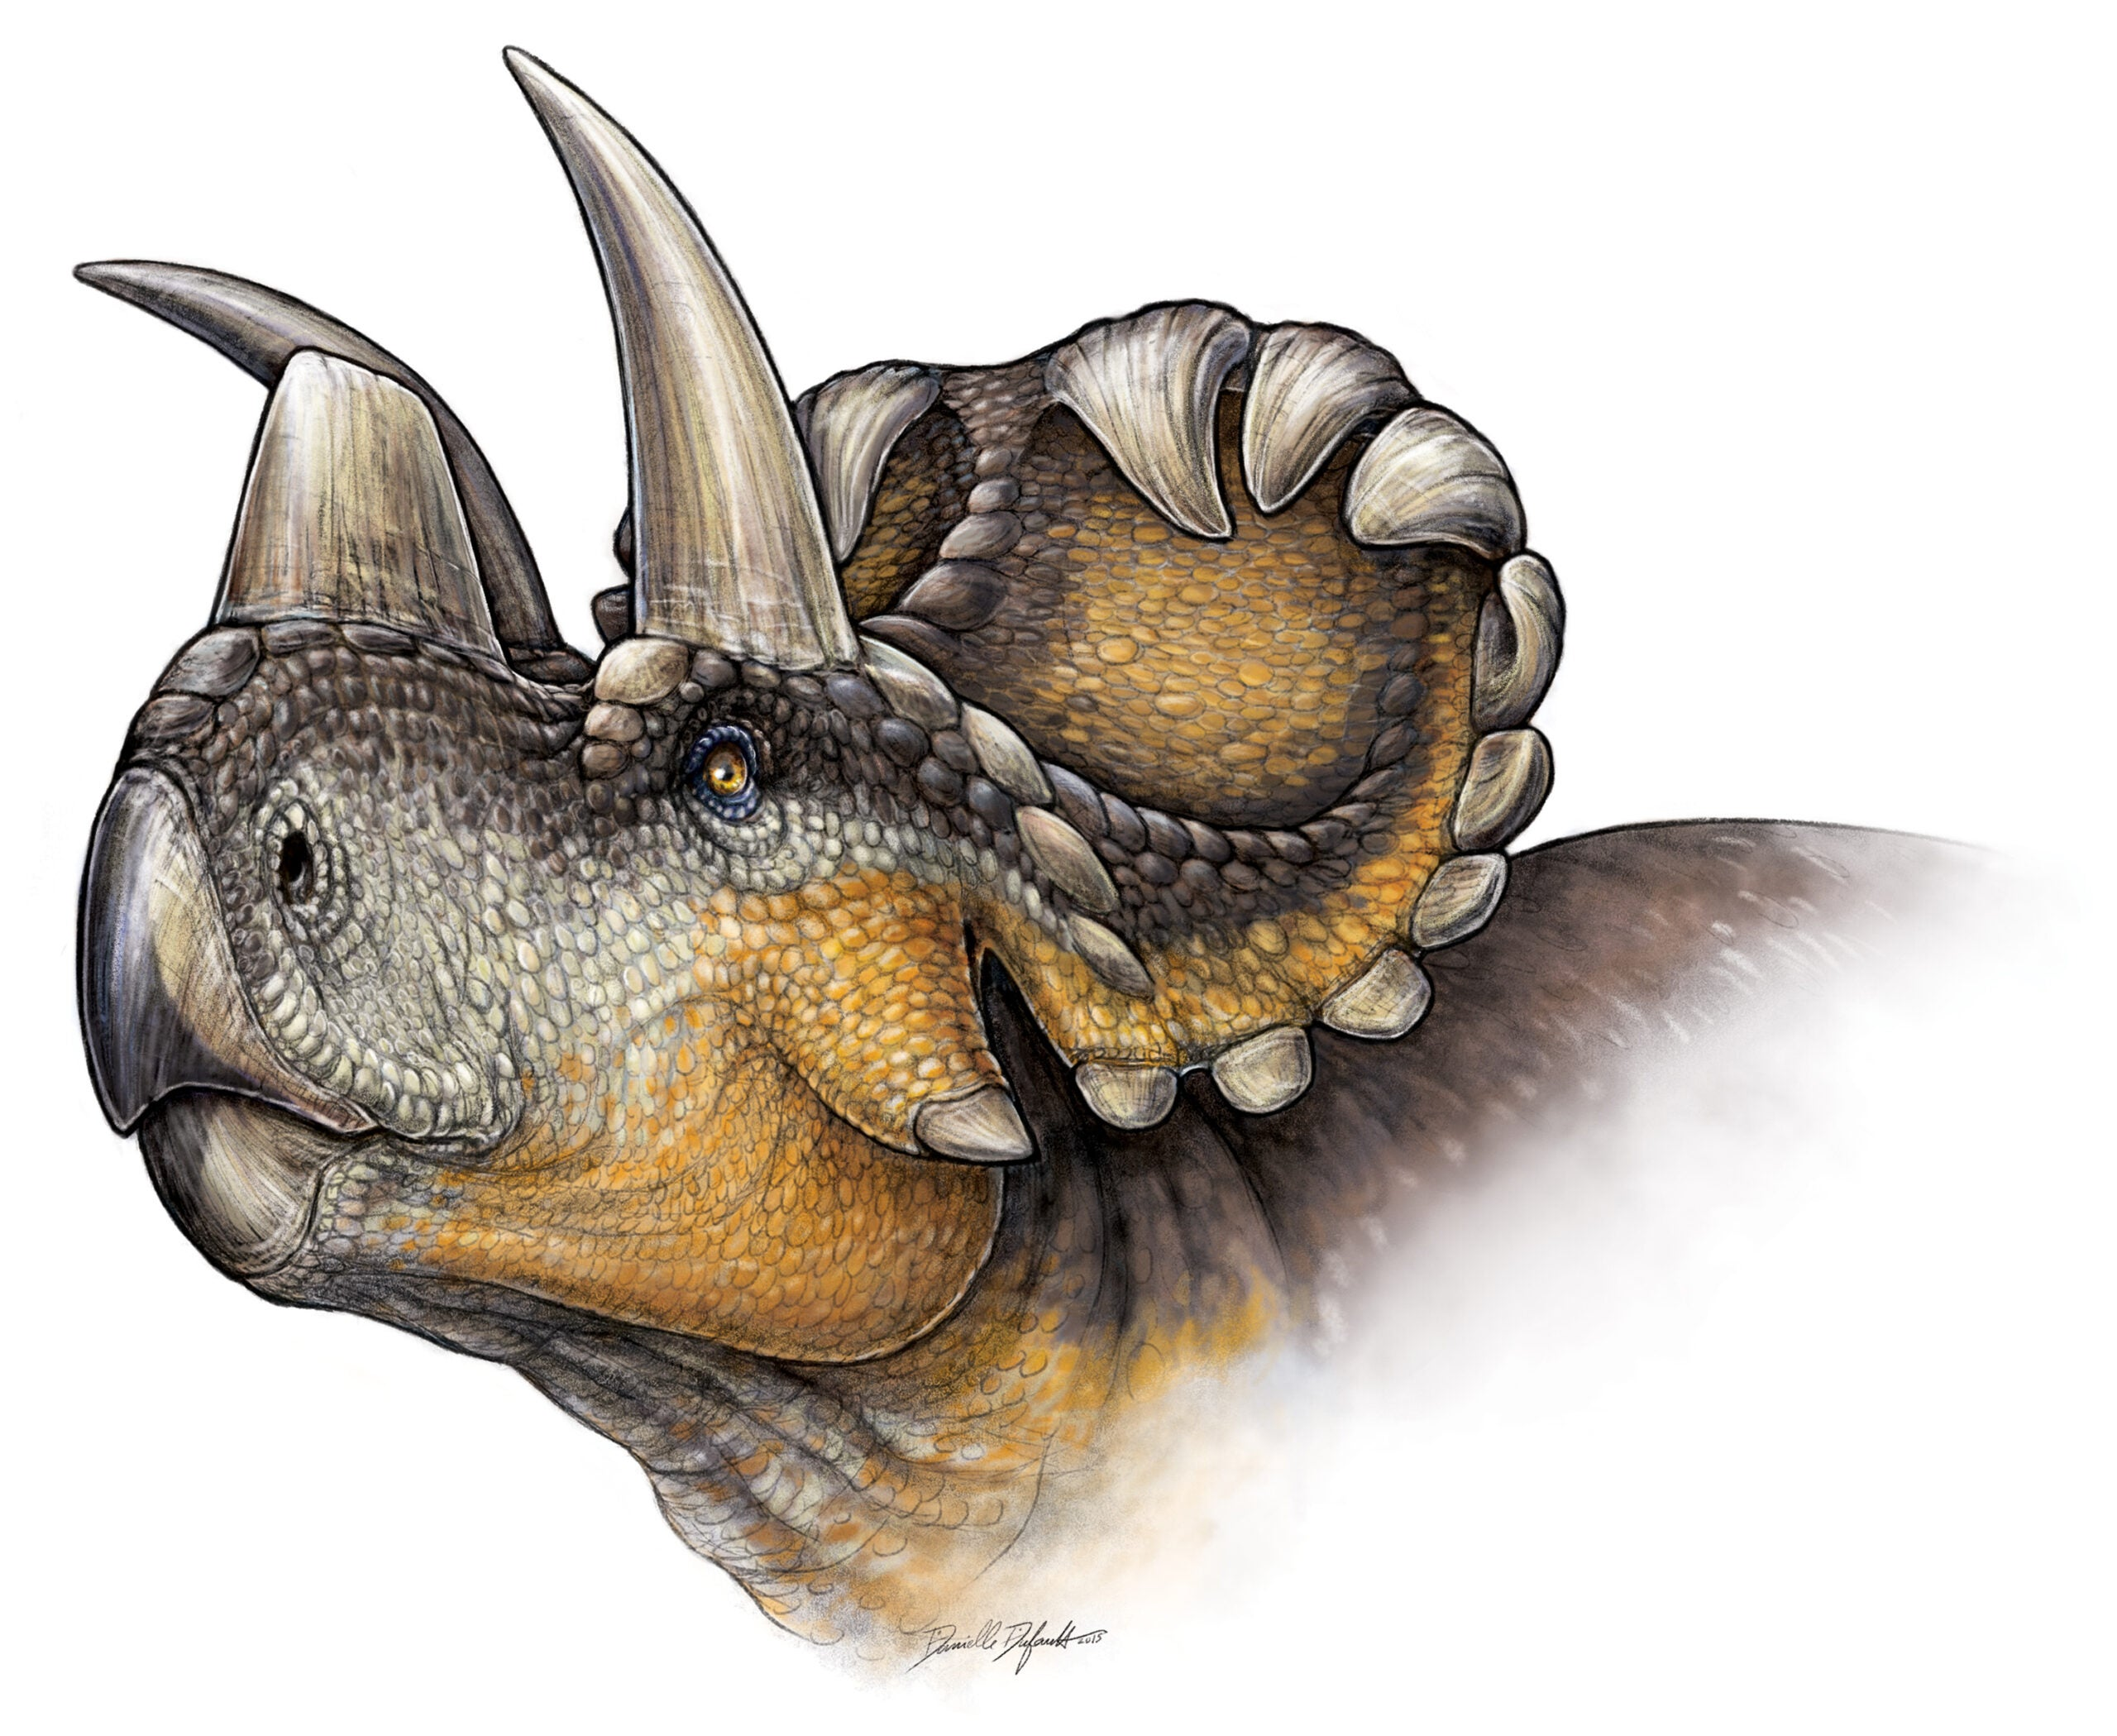 New Triceratops Relative Discovered, Named 'Wendy'